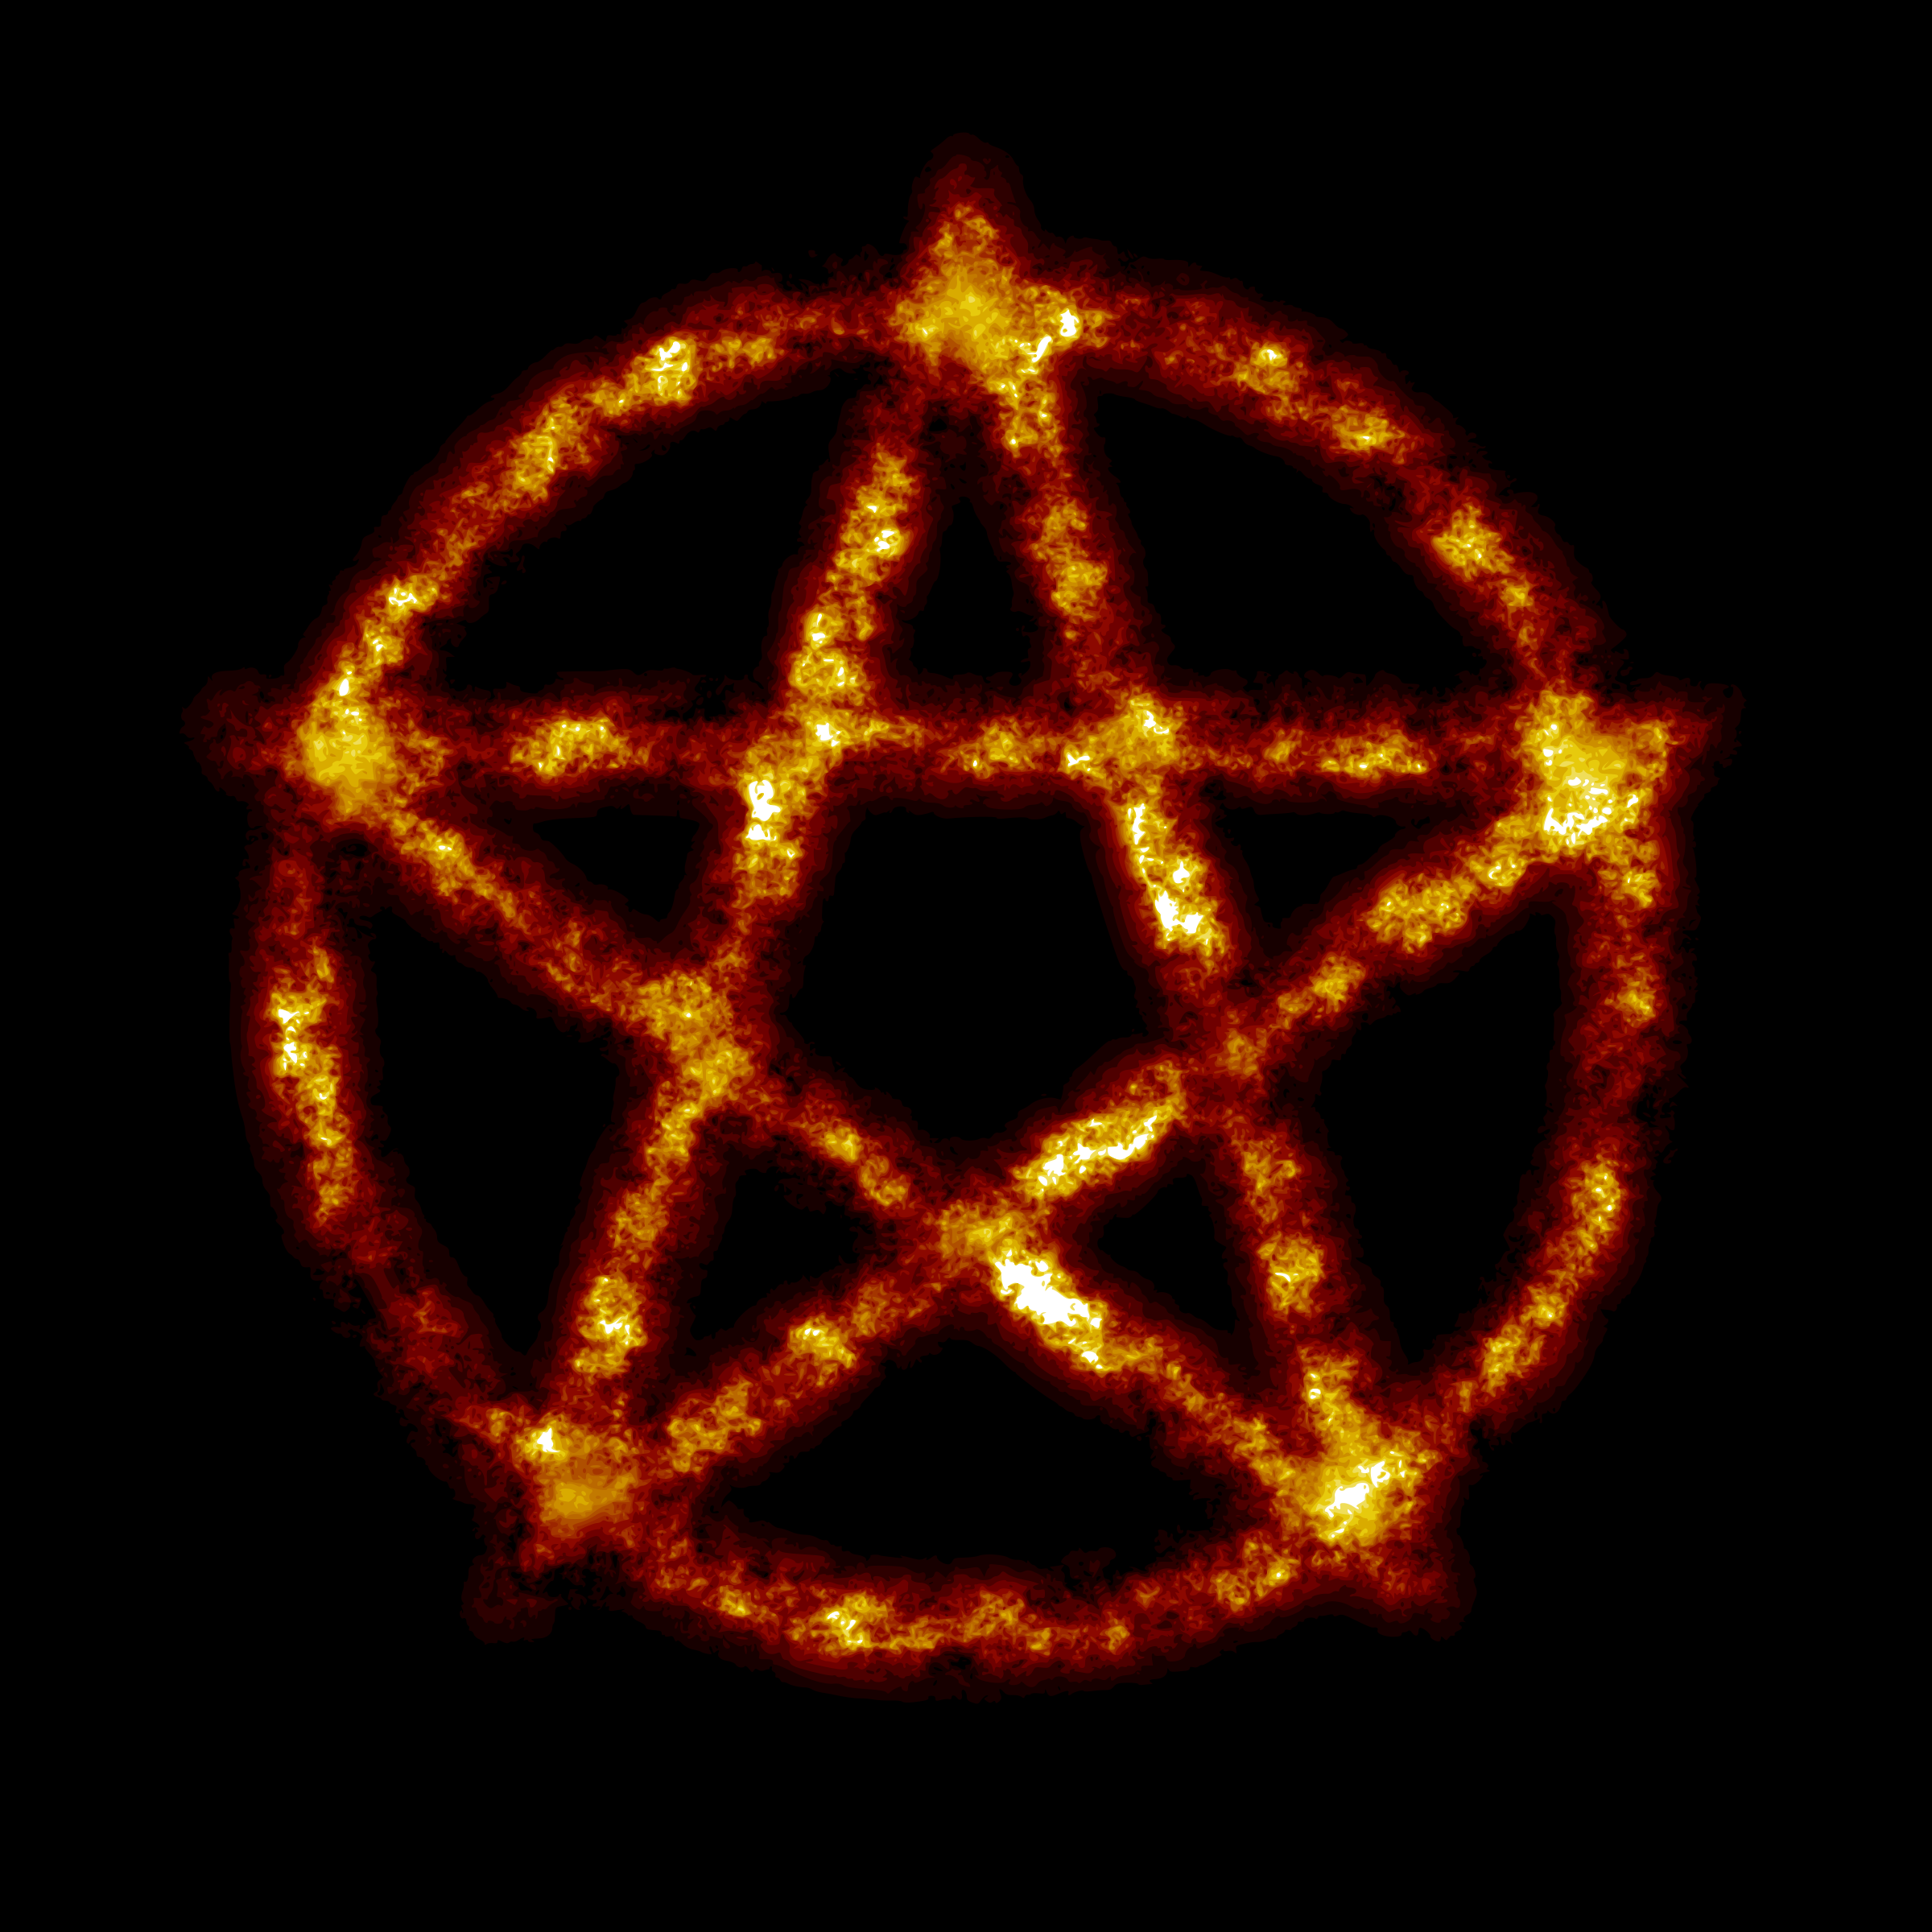 Burning pentagram by Firkin